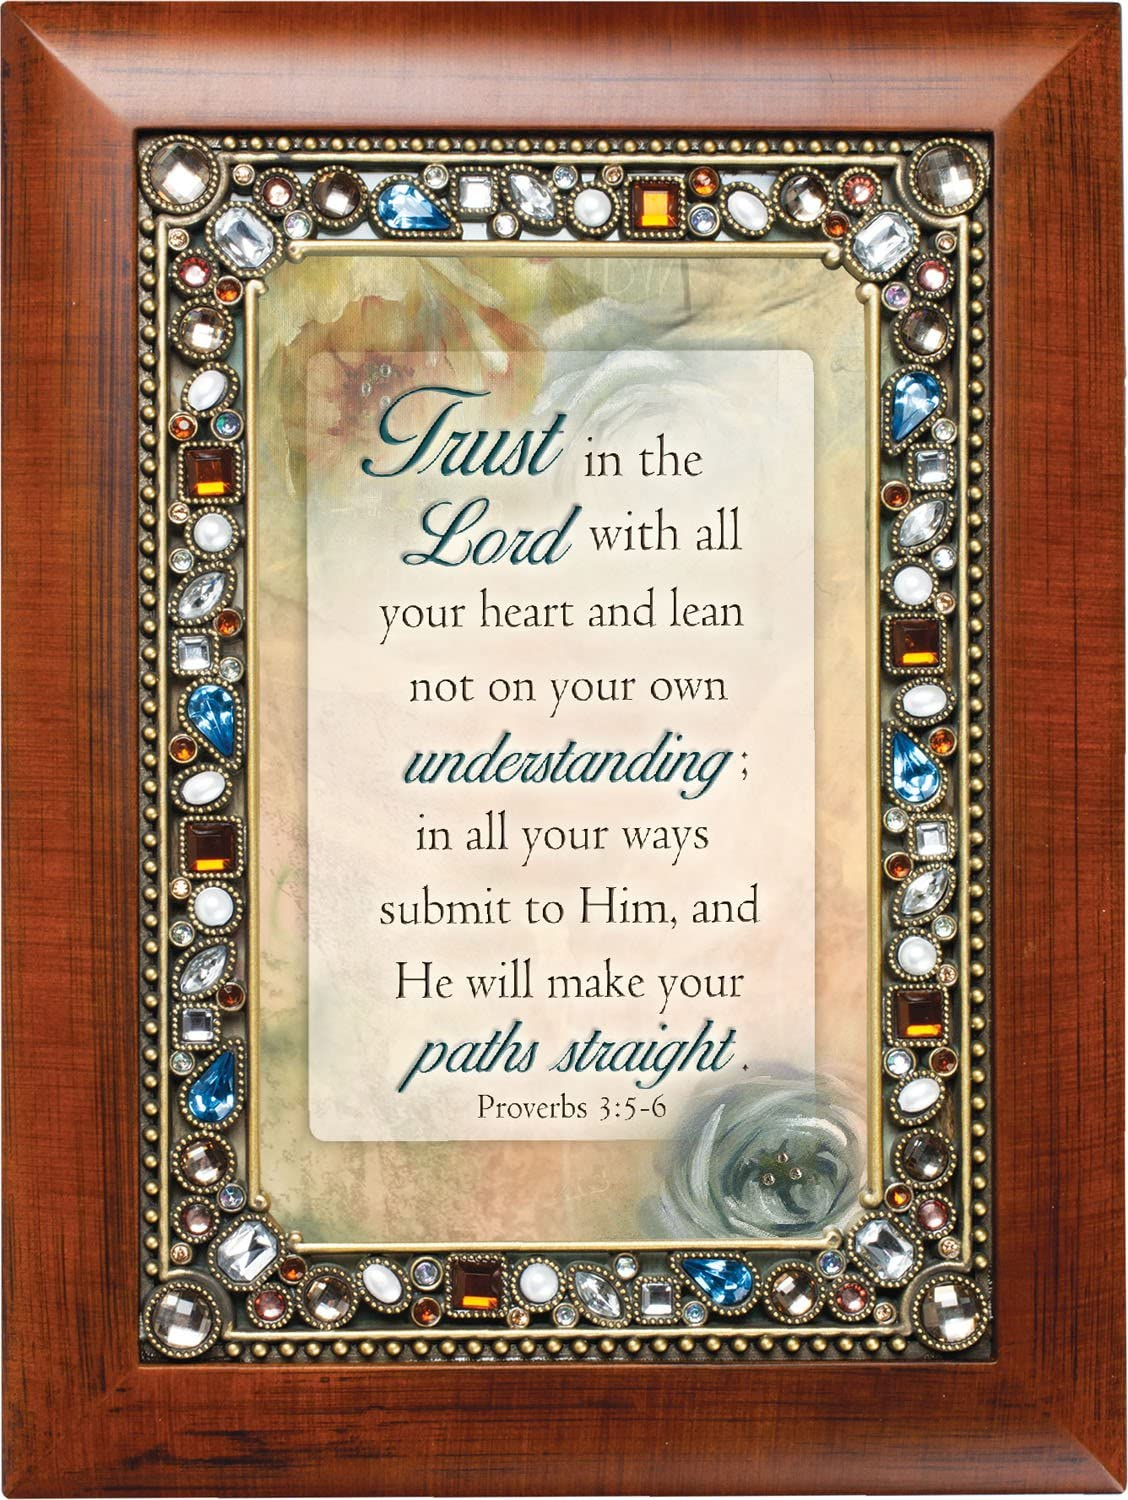 Cottage Garden Trust in The Lord Wood Finish Jeweled 4x6 Framed Art Plaque